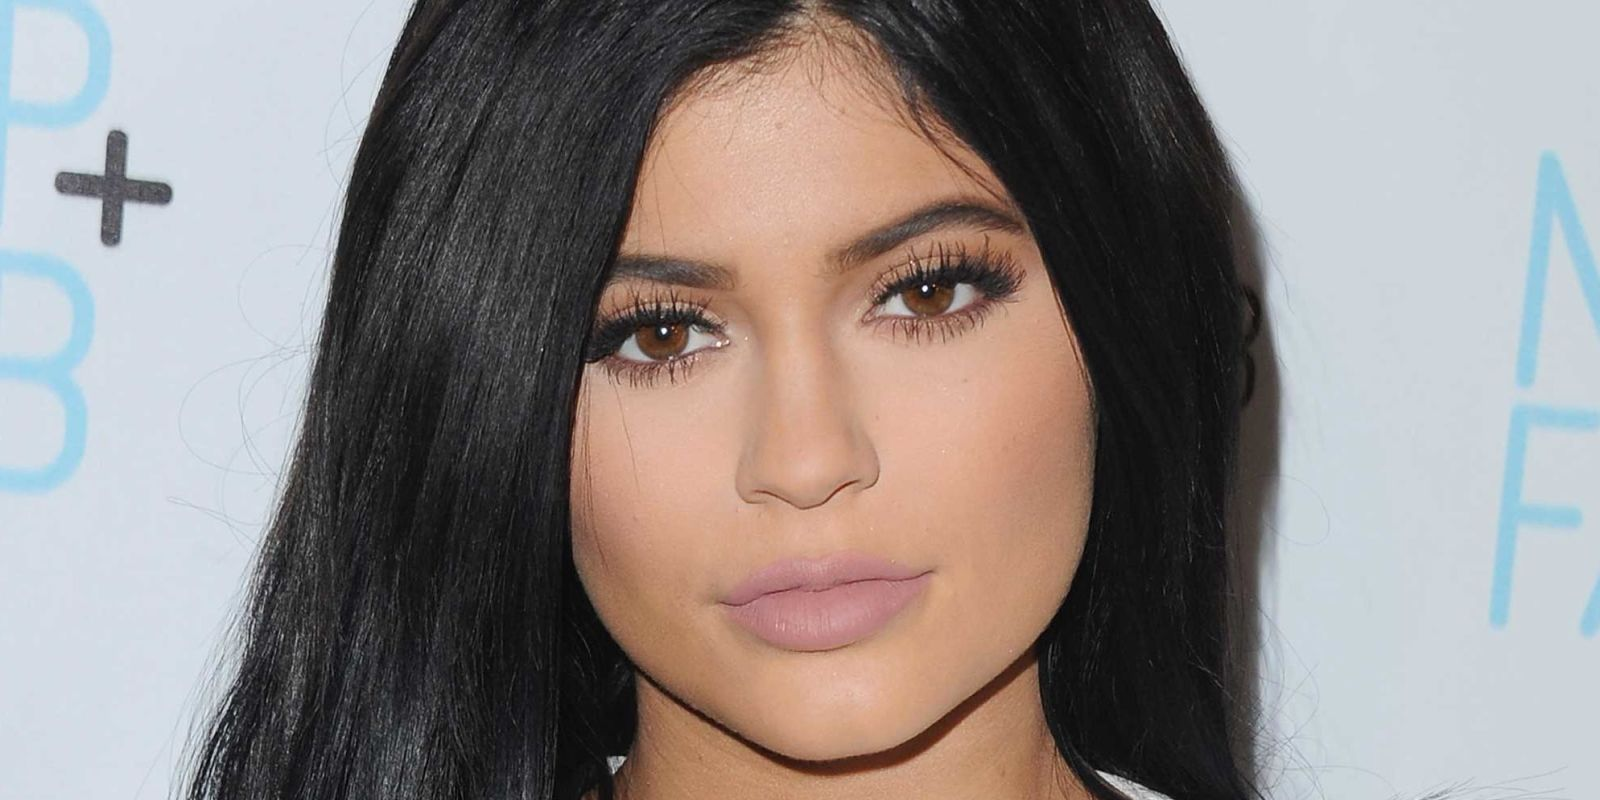 Hairstyles Kylie Jenner: Kylie Jenner Got A New Haircut, Posted The Whole Thing On